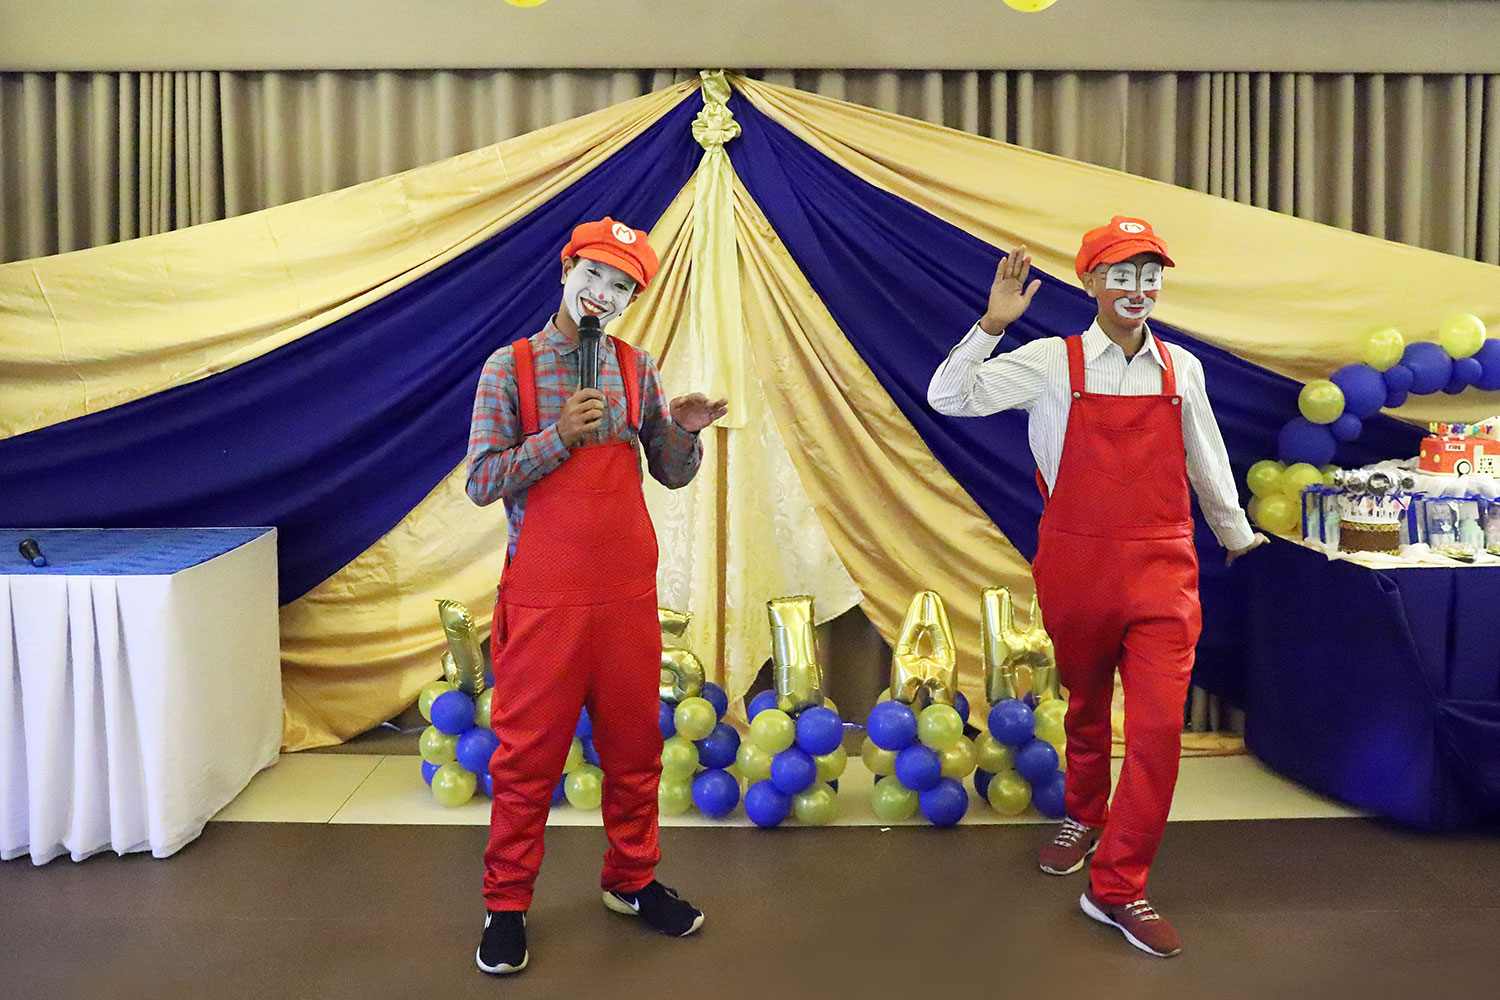 Rhonze Klowns and Party Shop